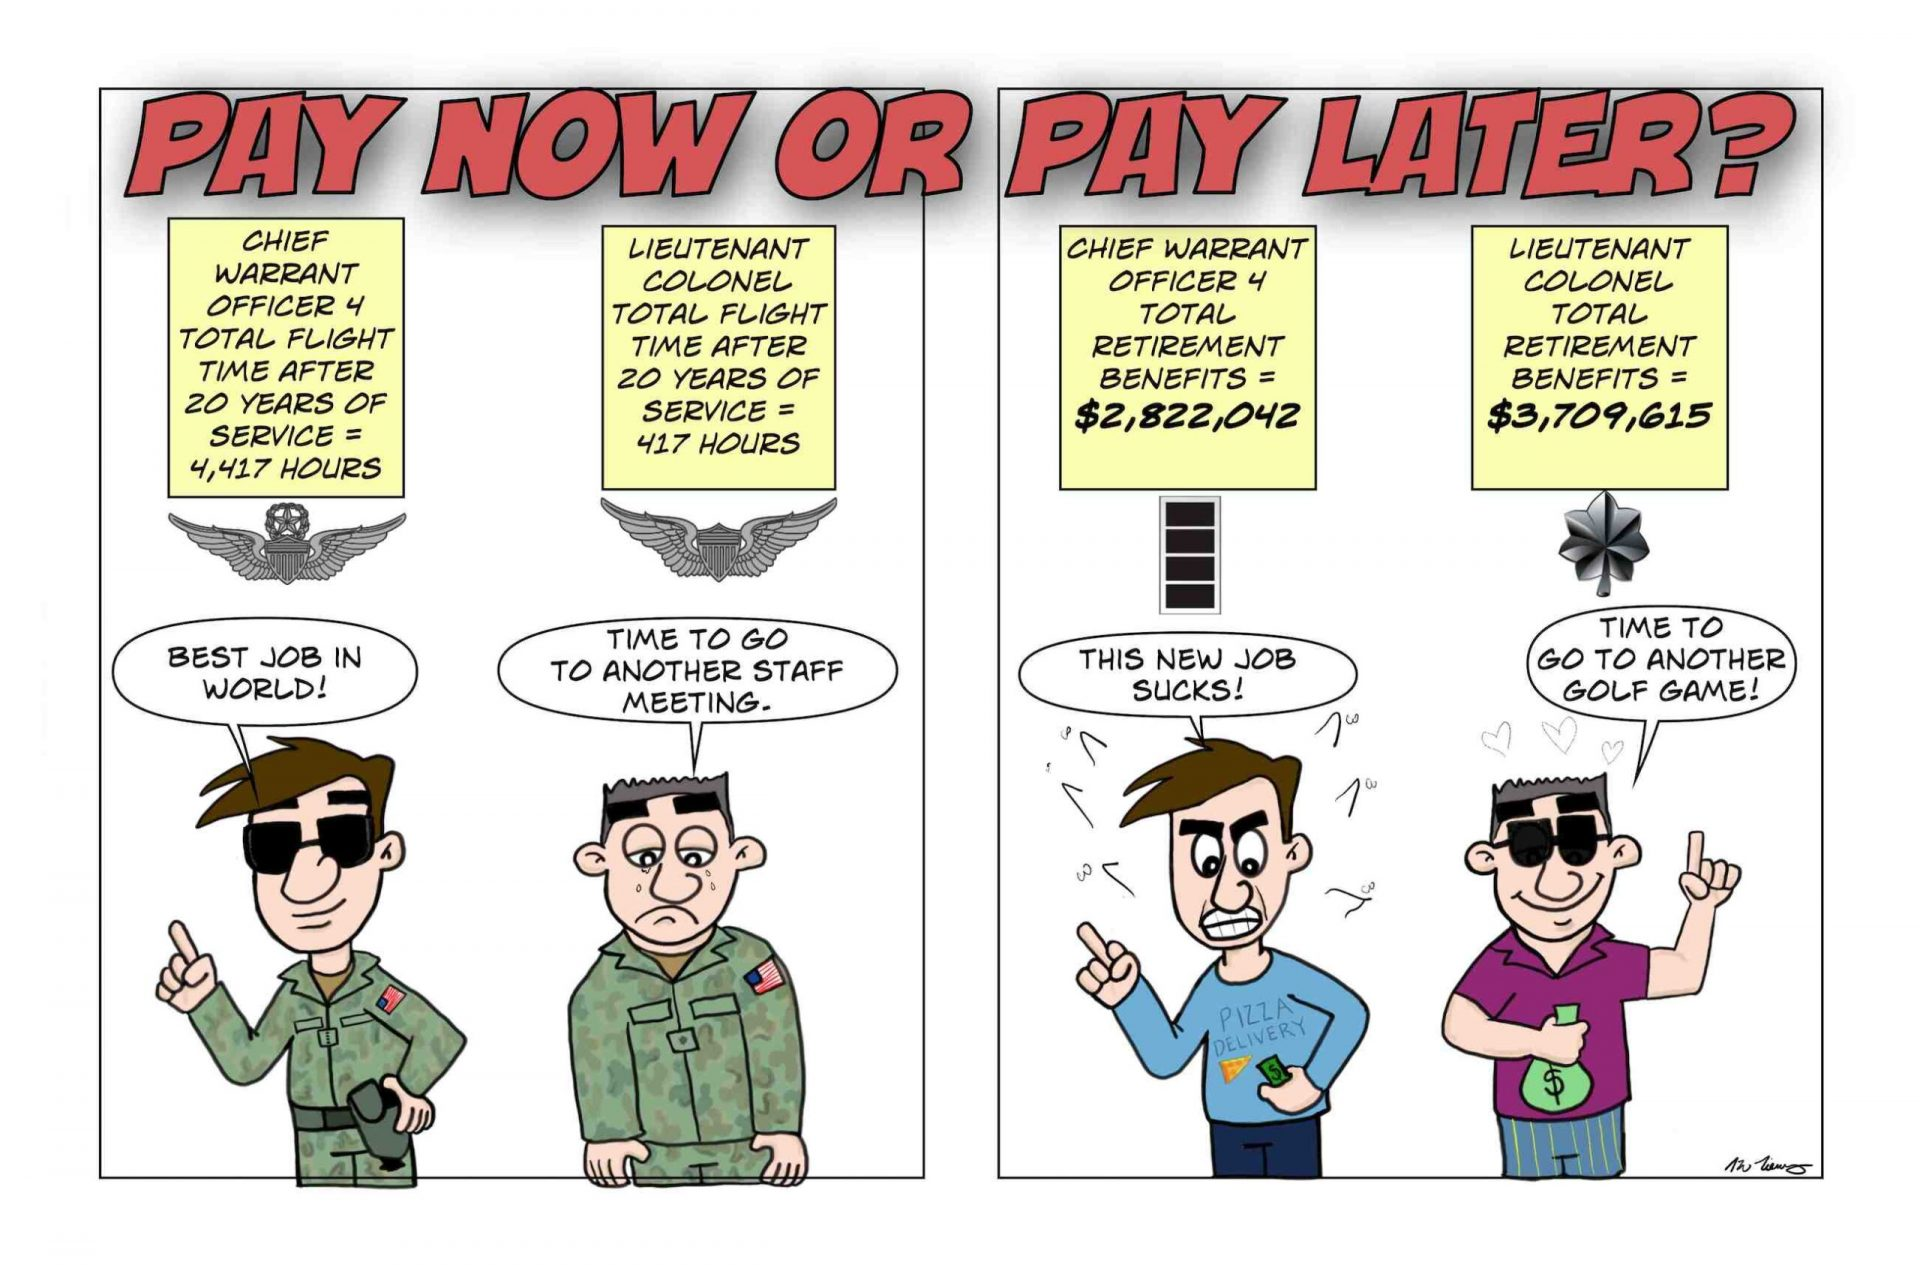 In the Army as a Warrant Officer you get more flight time but less military retirement check compared to Lieutenant Colonels